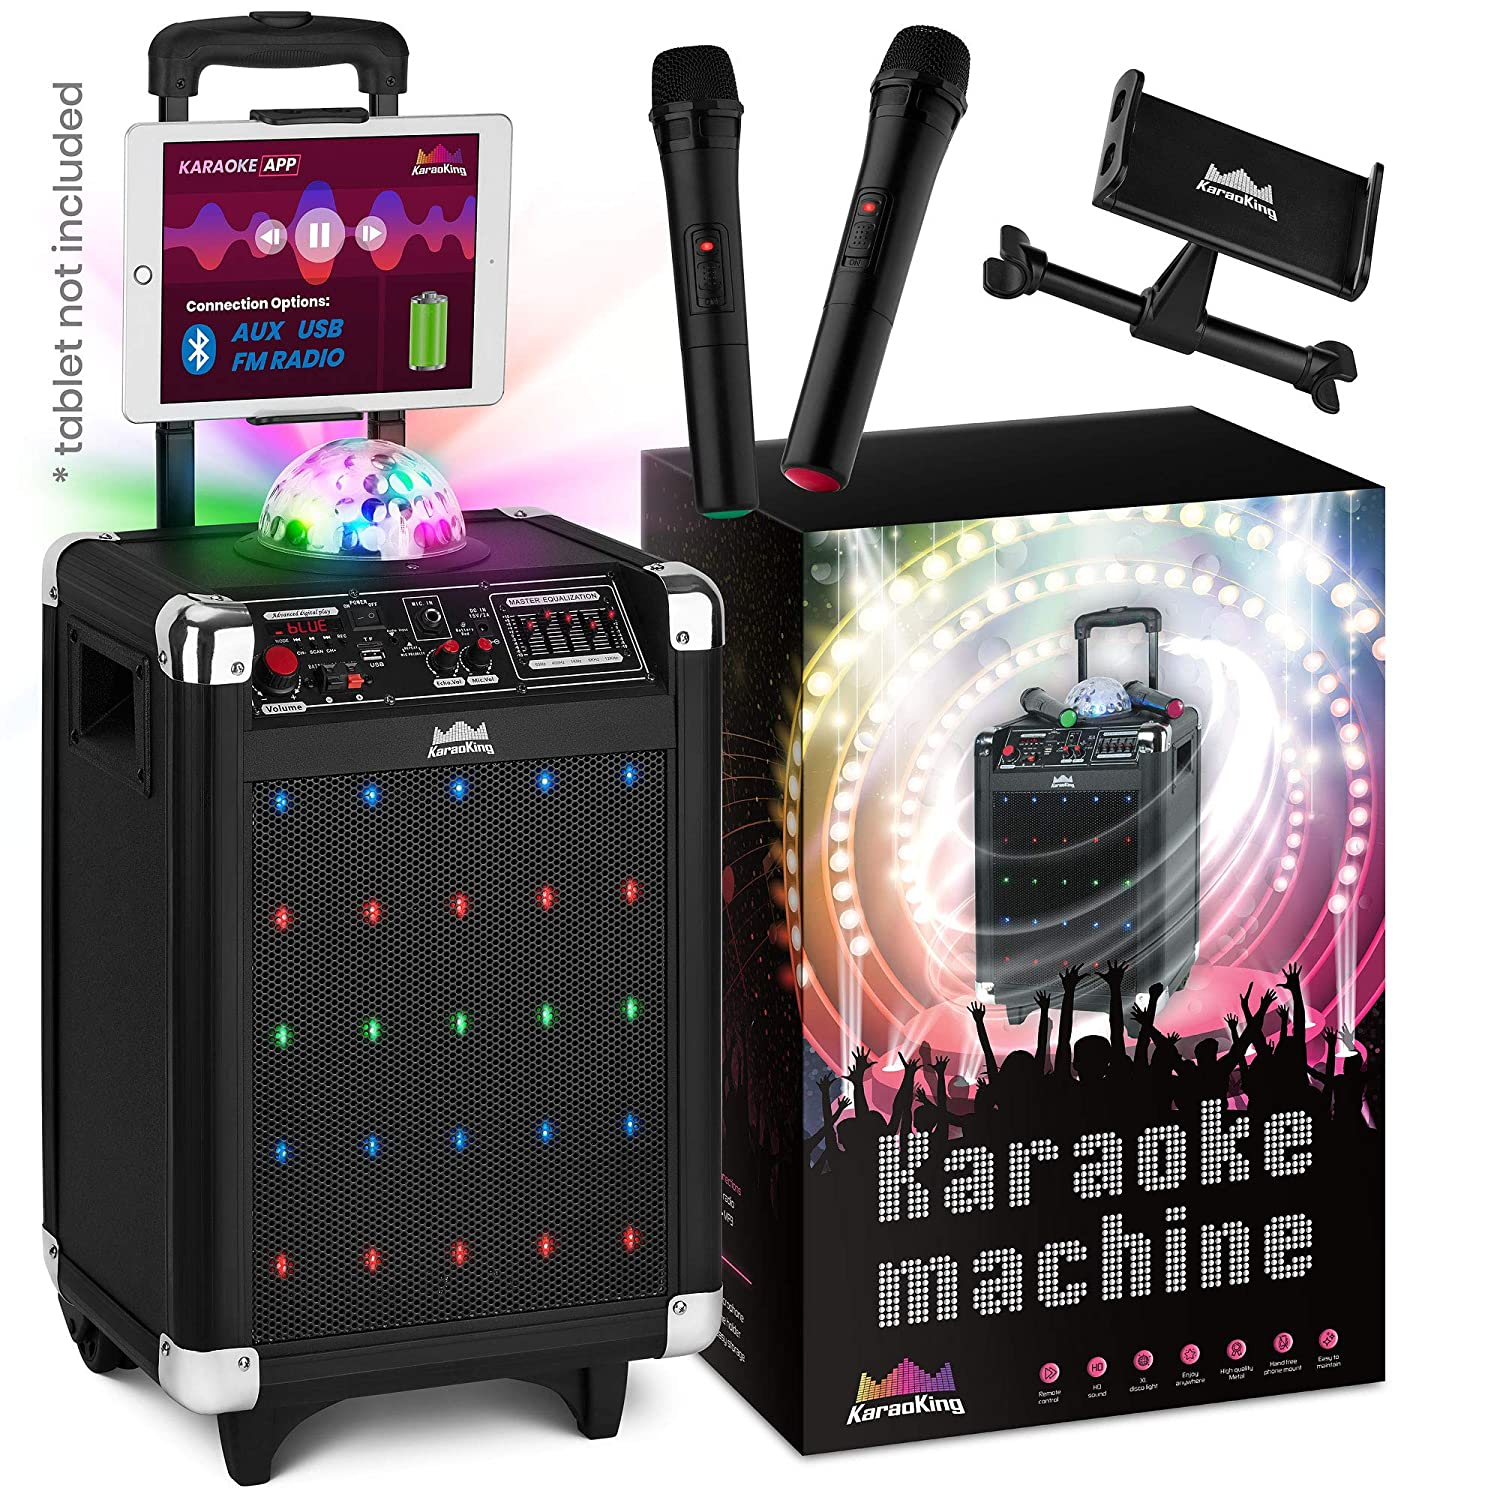 Karaoke Machine for Kids & Adults – 2019 New Wireless Microphone Speaker with Disco Ball, 2 Wireless Bluetooth Microphones